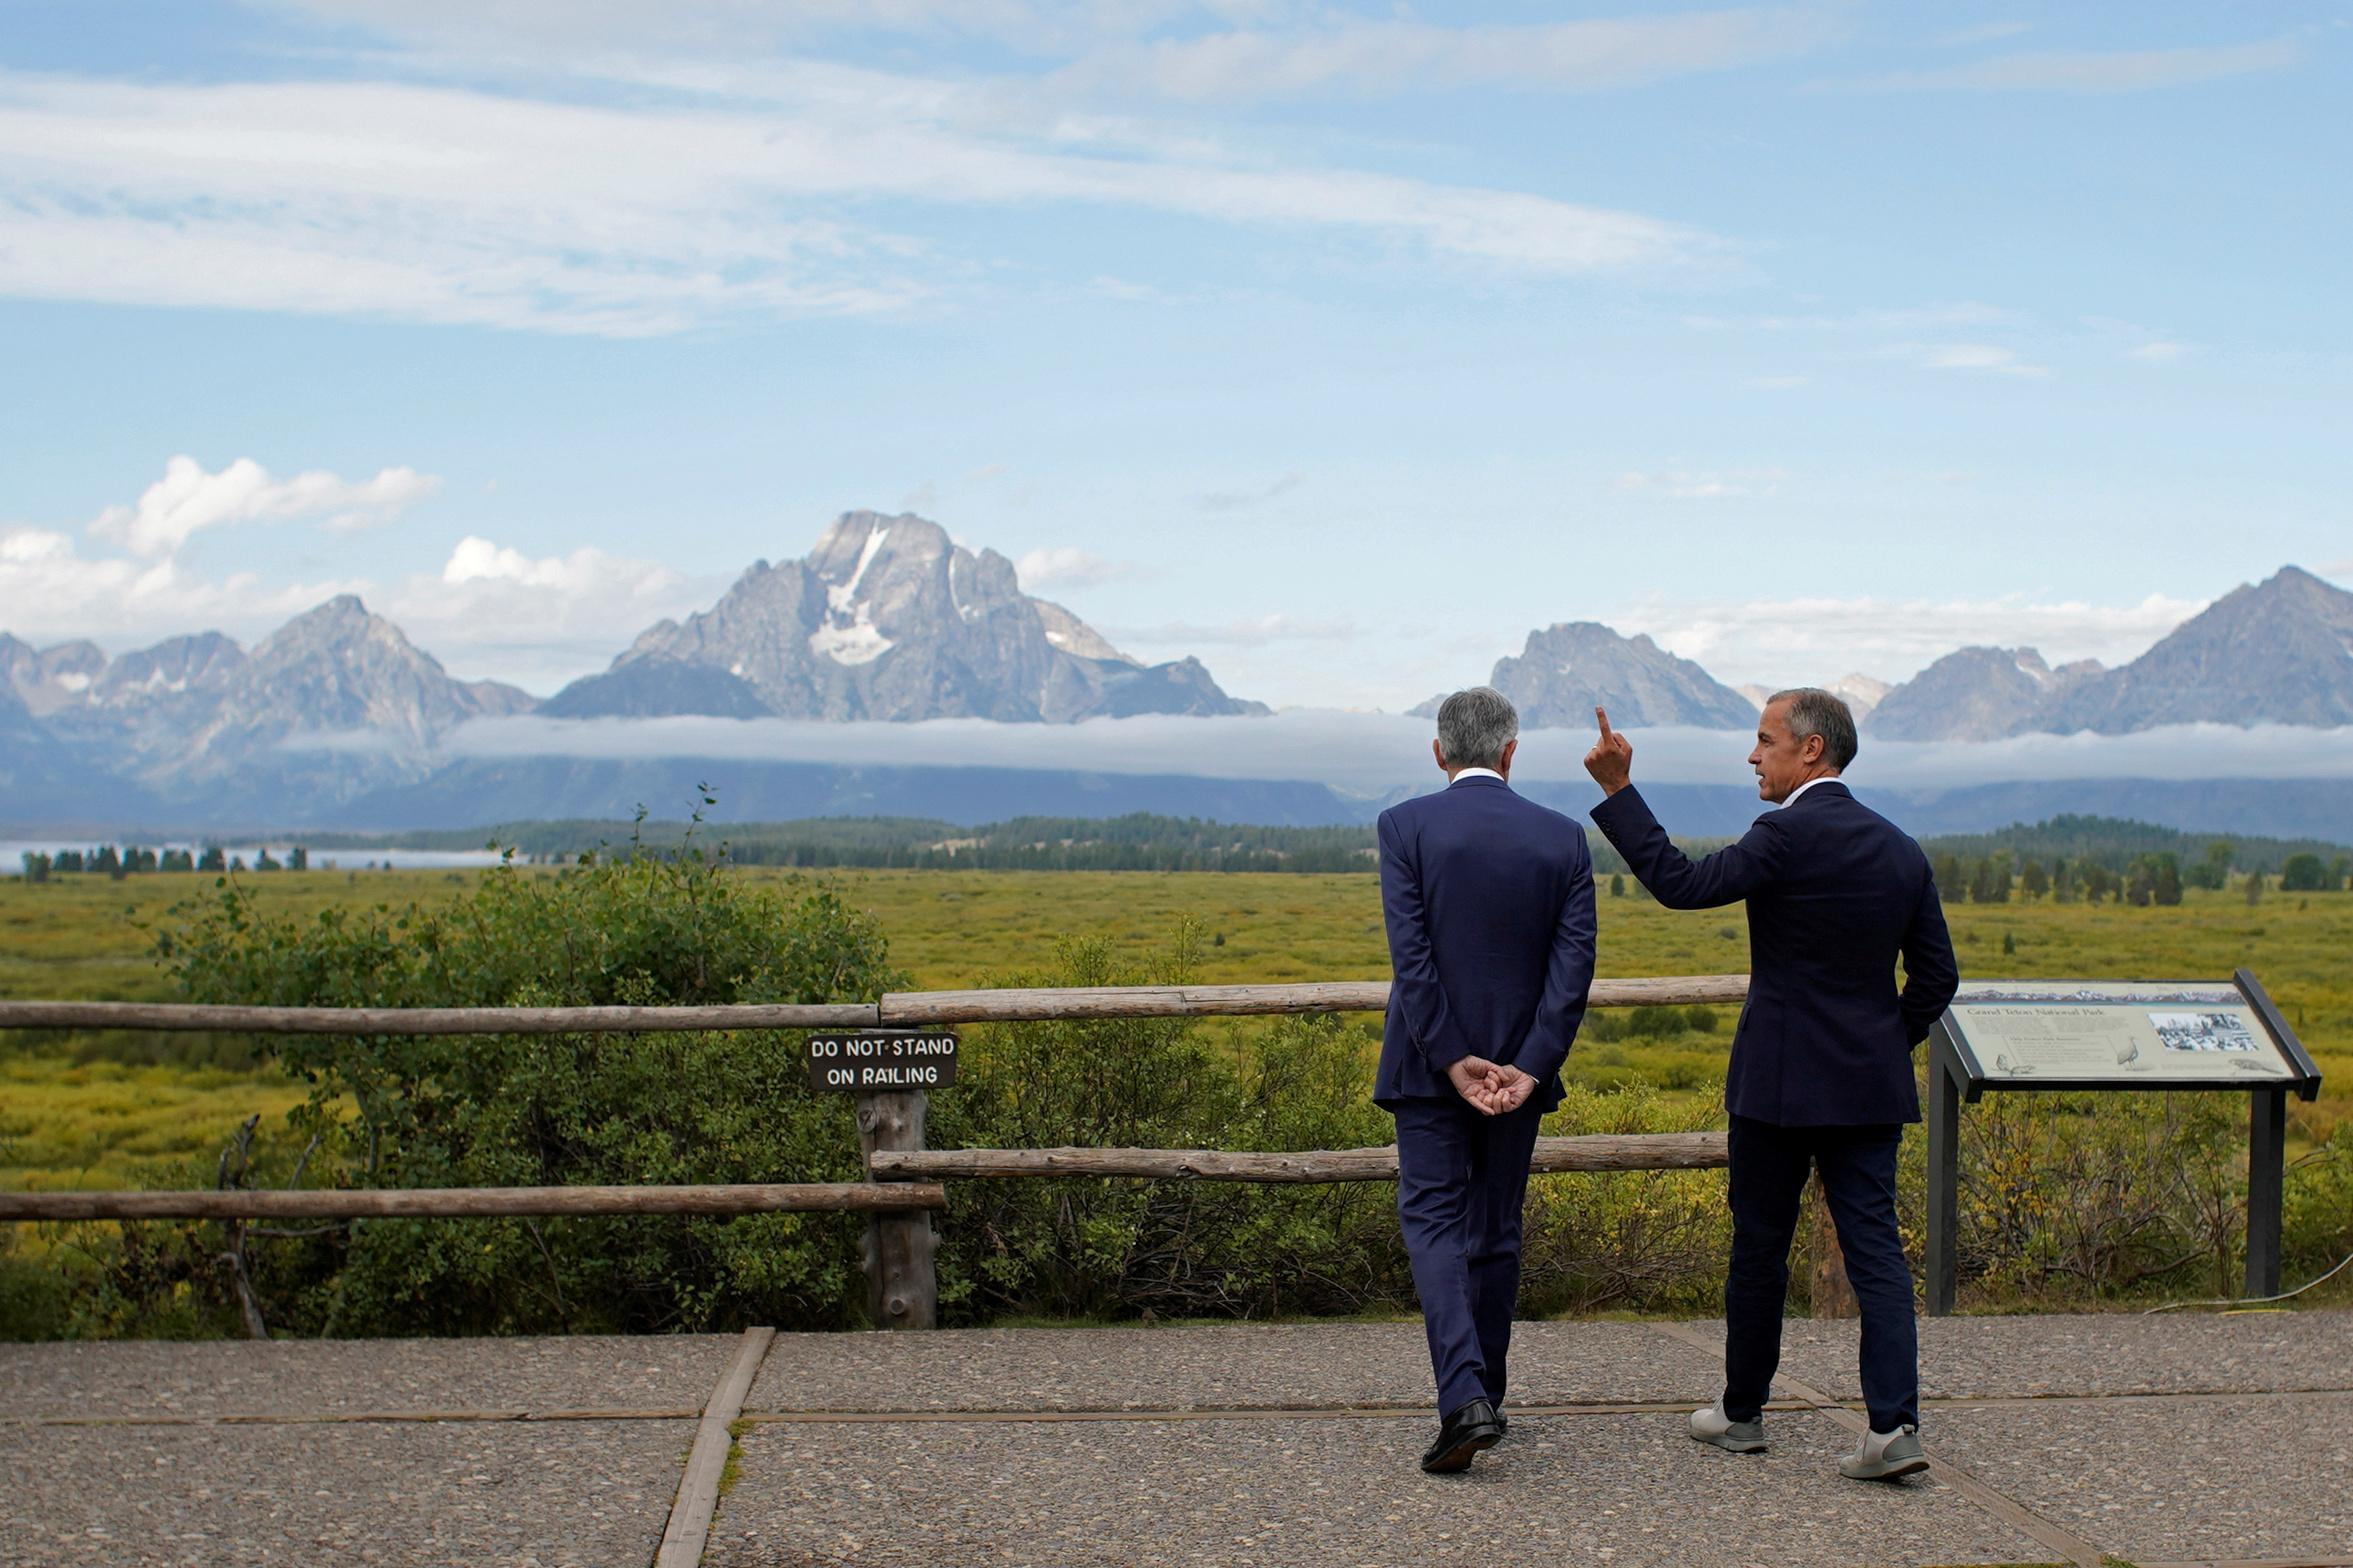 Jackson Hole wrap-up: For the Fed, inflation is all about managing expectations